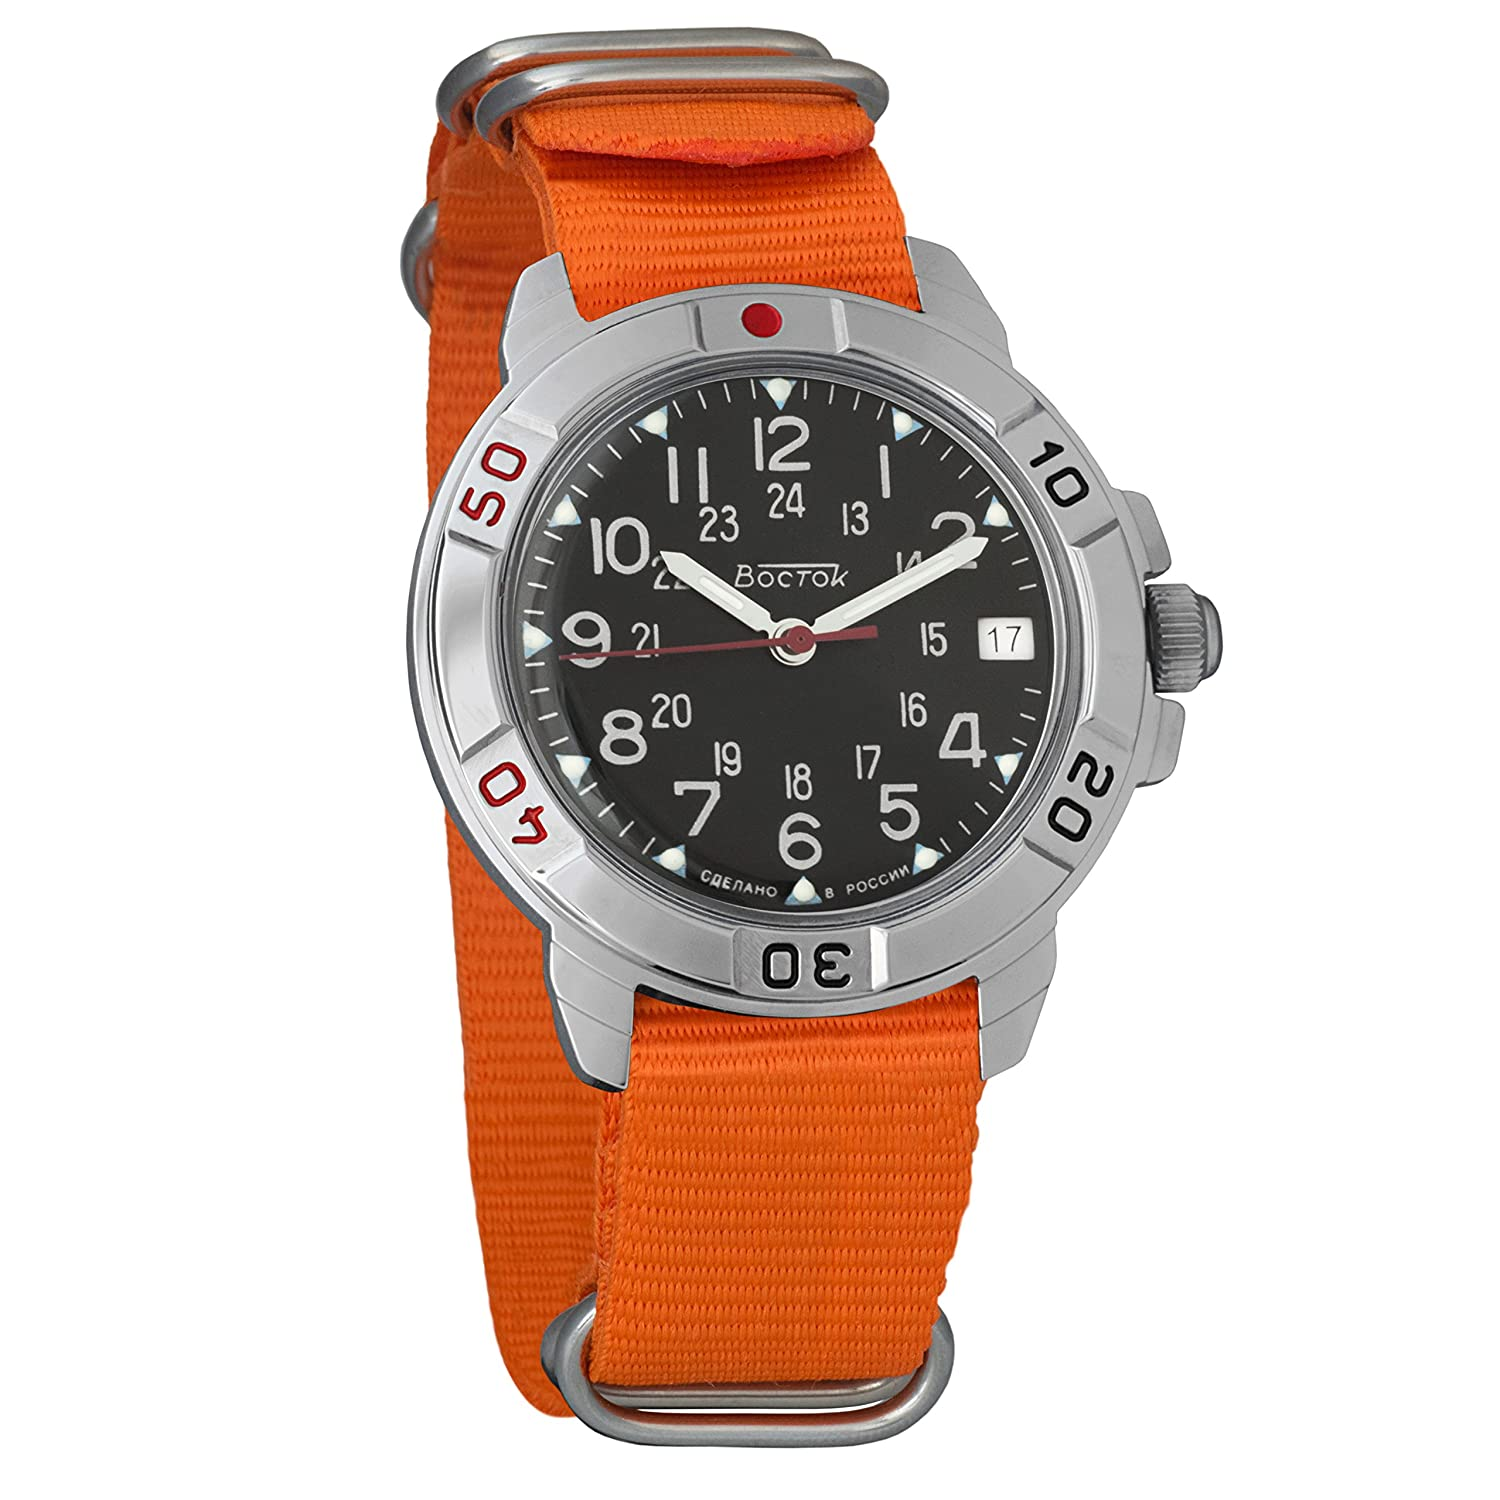 Amazon.com: Vostok Komandirskie 24 Hour Dial Mechanical Mens Military Wrist Watch #431783 (orange): Watches